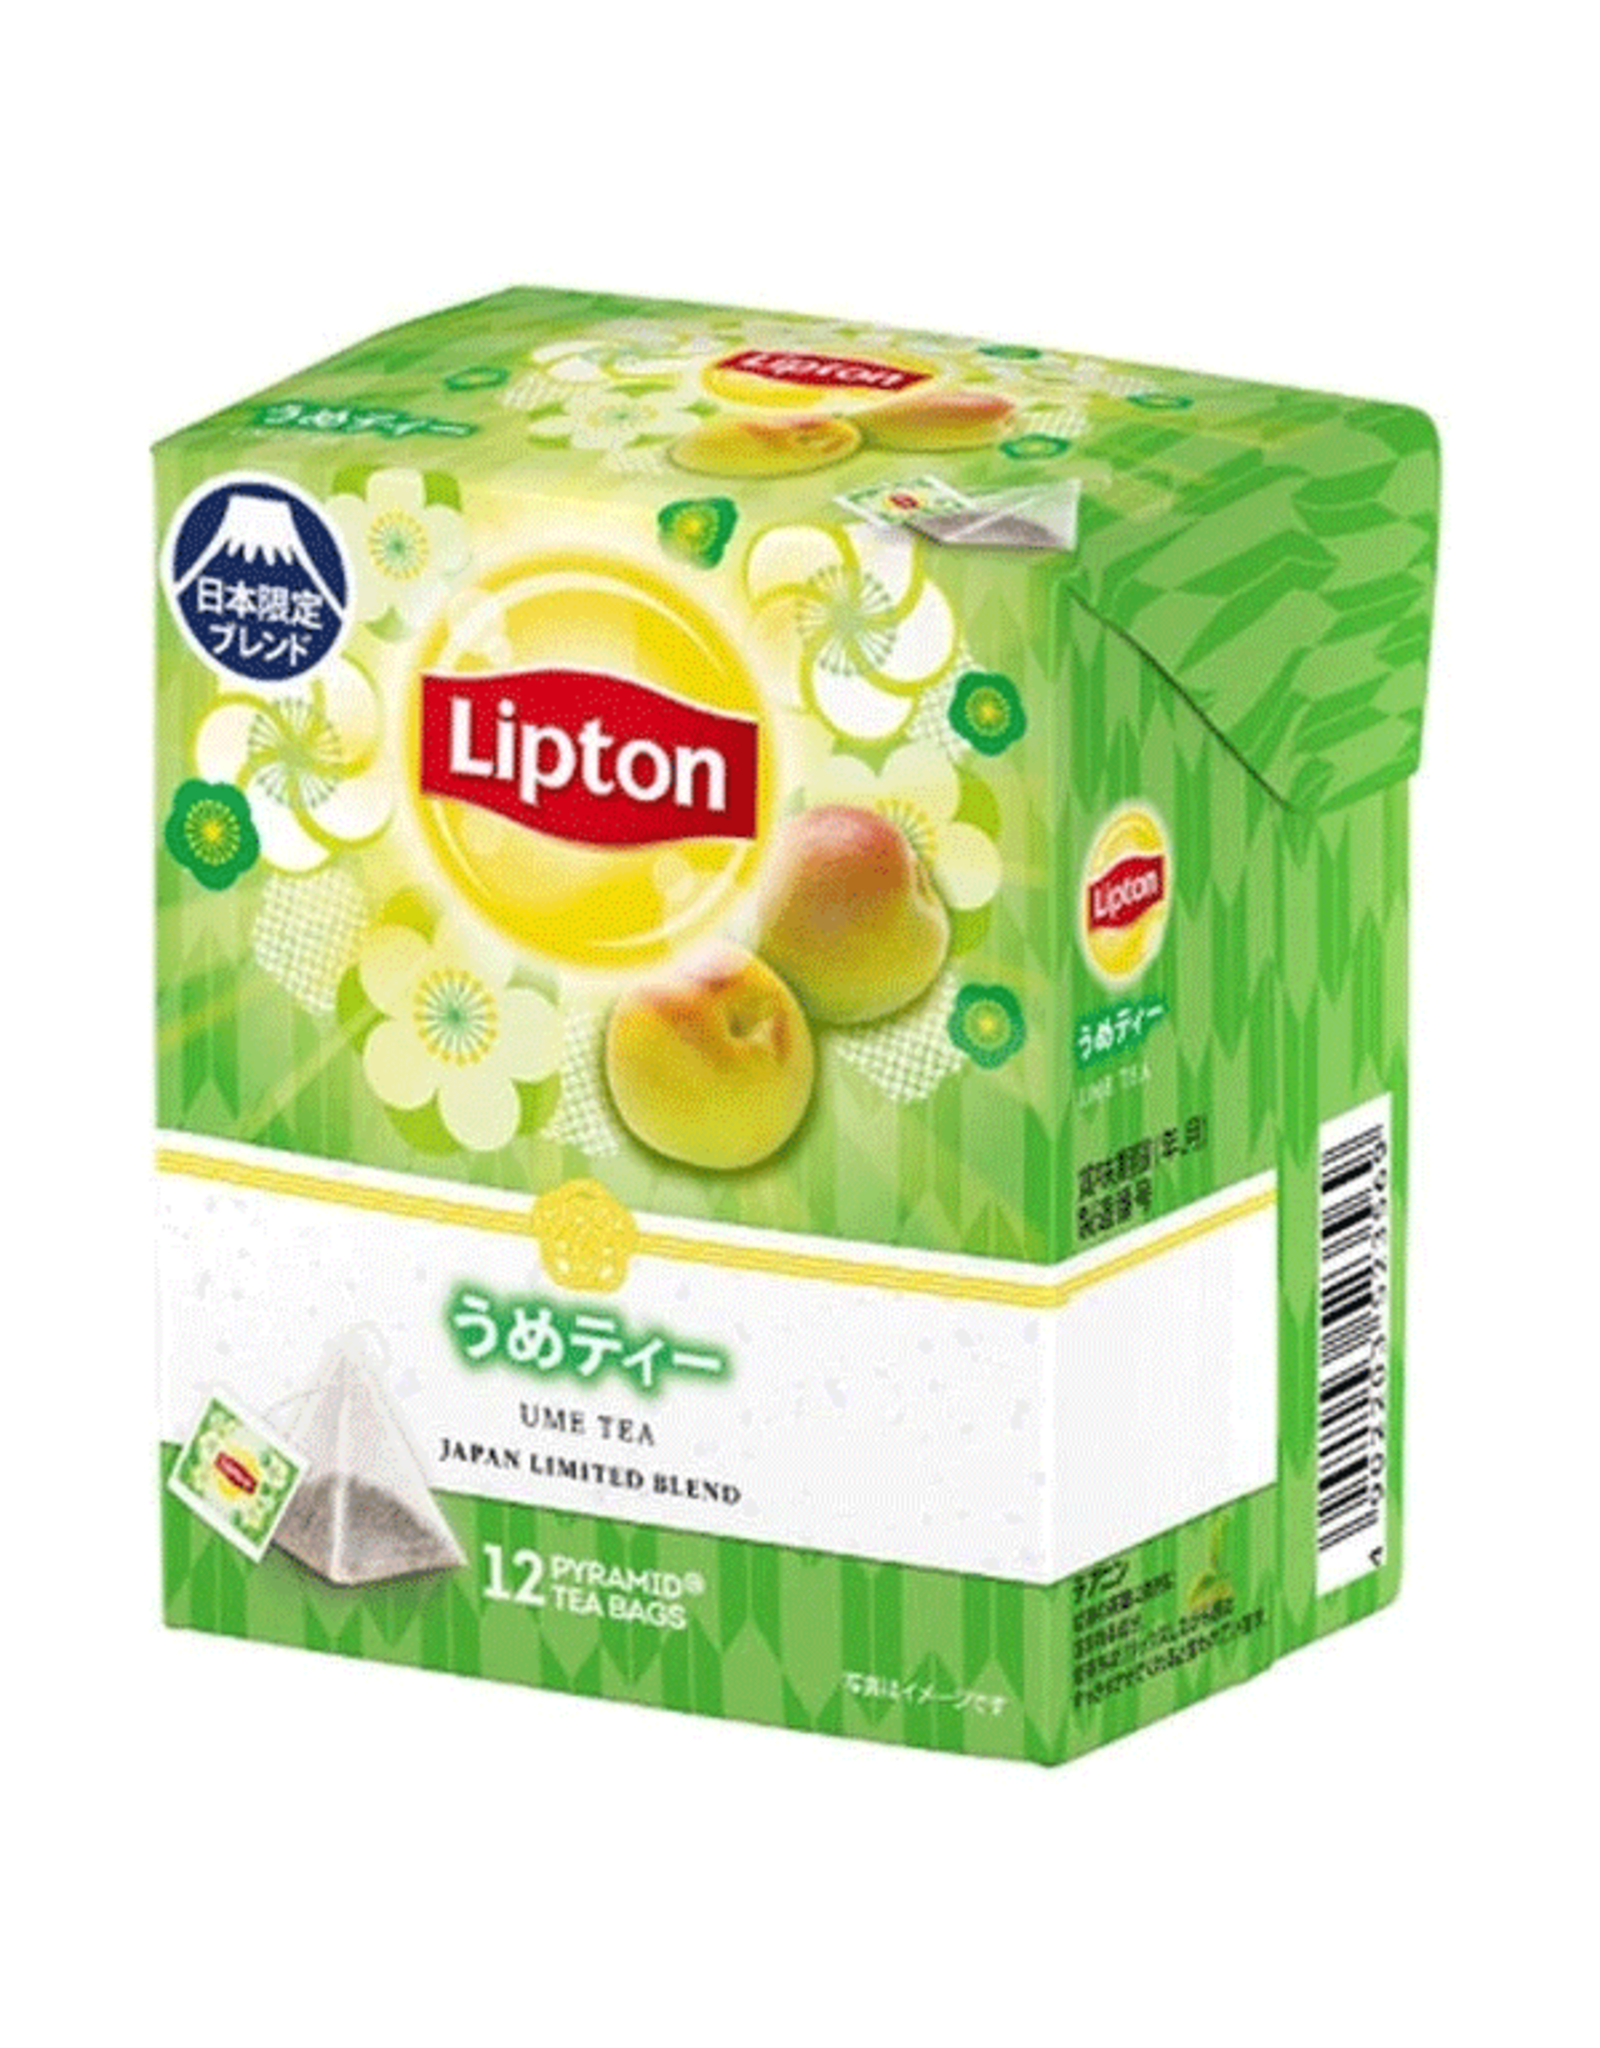 Lipton Ume Tea Pyramid Bag